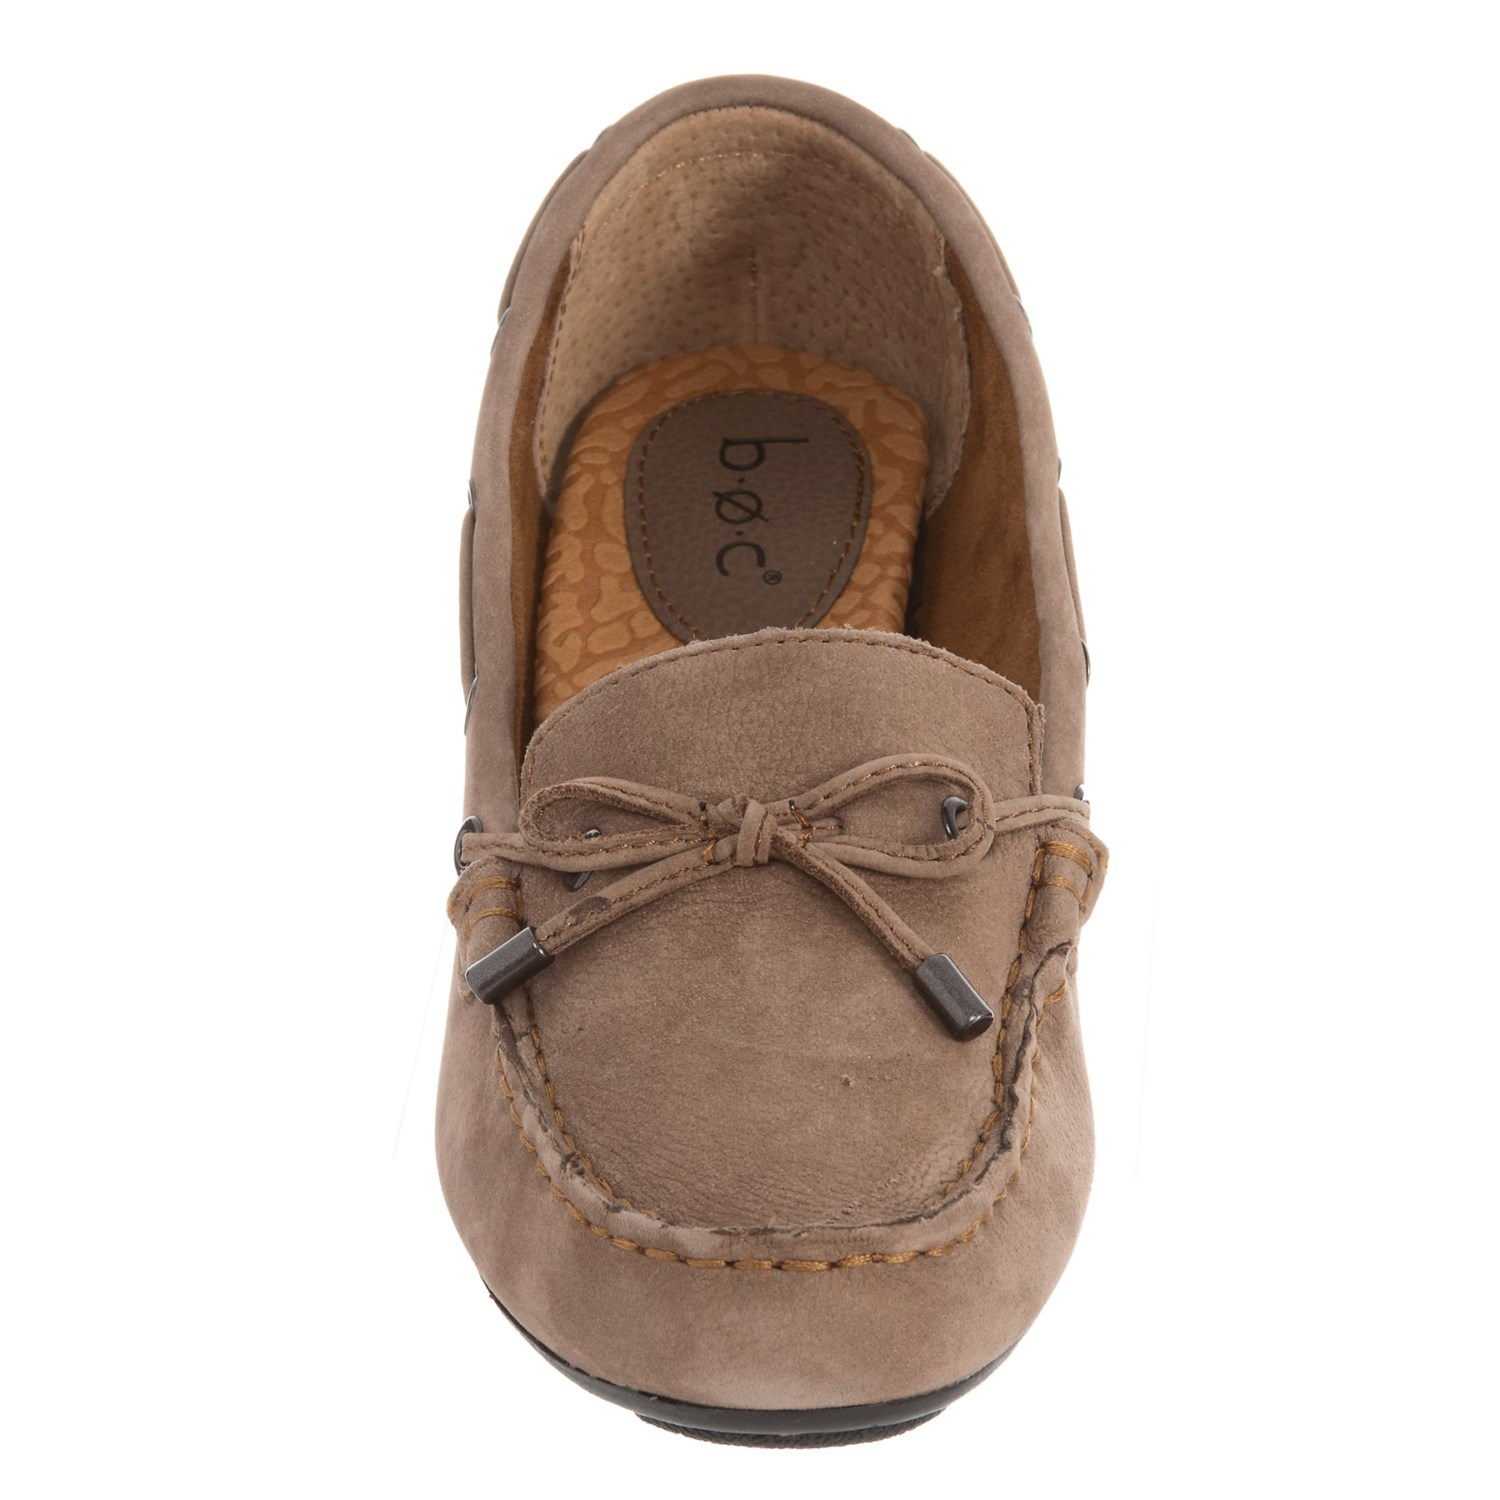 62098b6290d b.o.c Holland Moccasins (For Women) - Save 65%